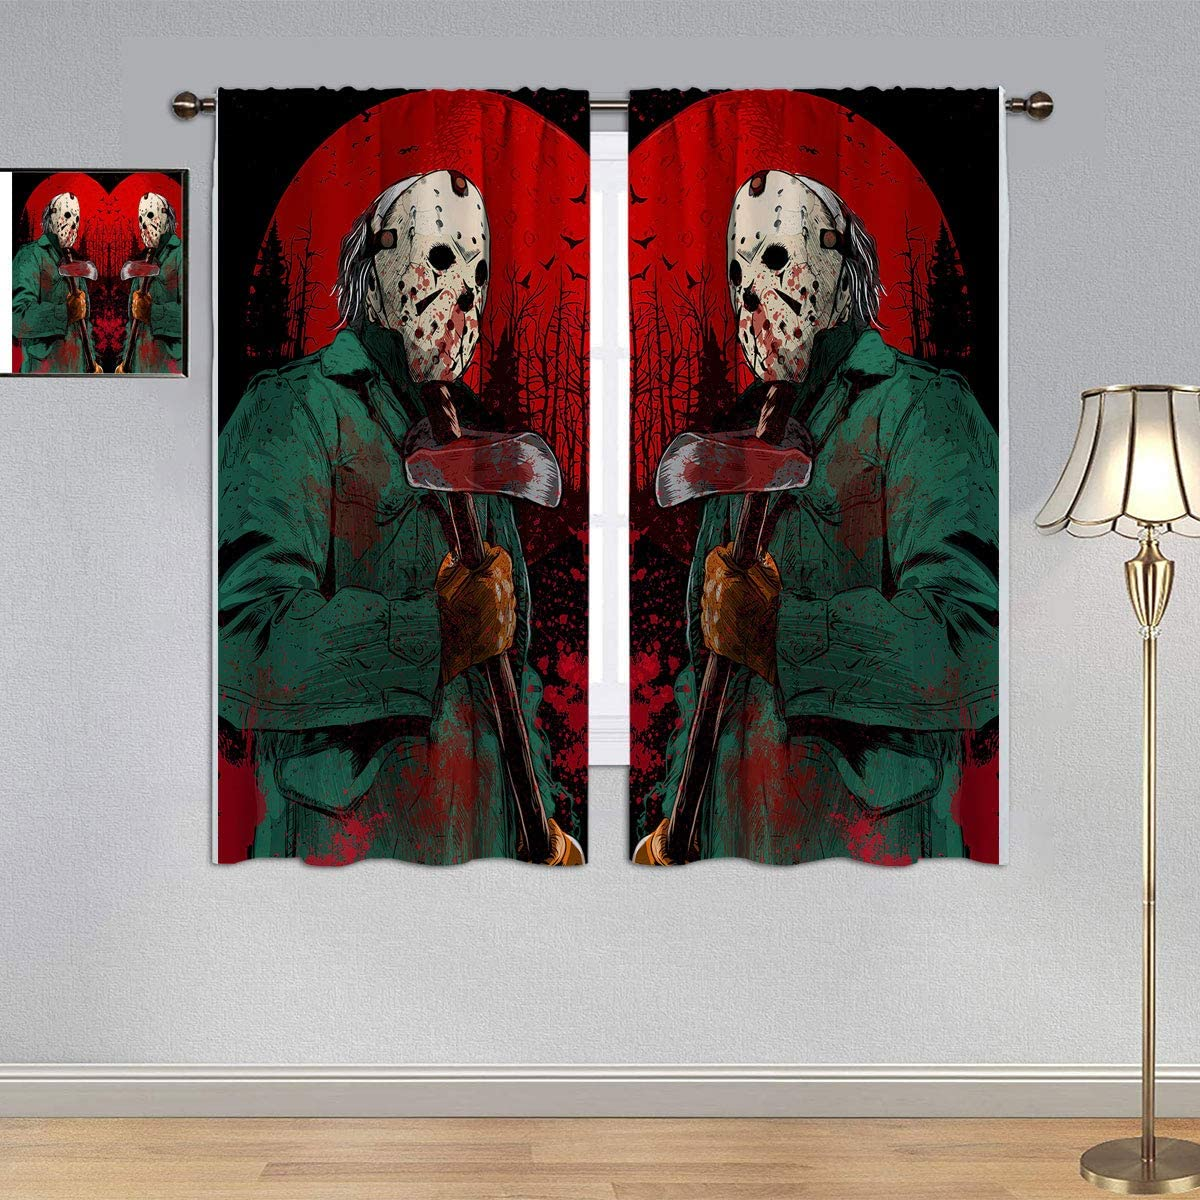 Kids Decor Thermal Insulating Blackout Curtain Friday The 13th Curtains, Horror Movie Halloween Jason Waterproof Window Curtain for Boy Bedroom 42x45 Inch